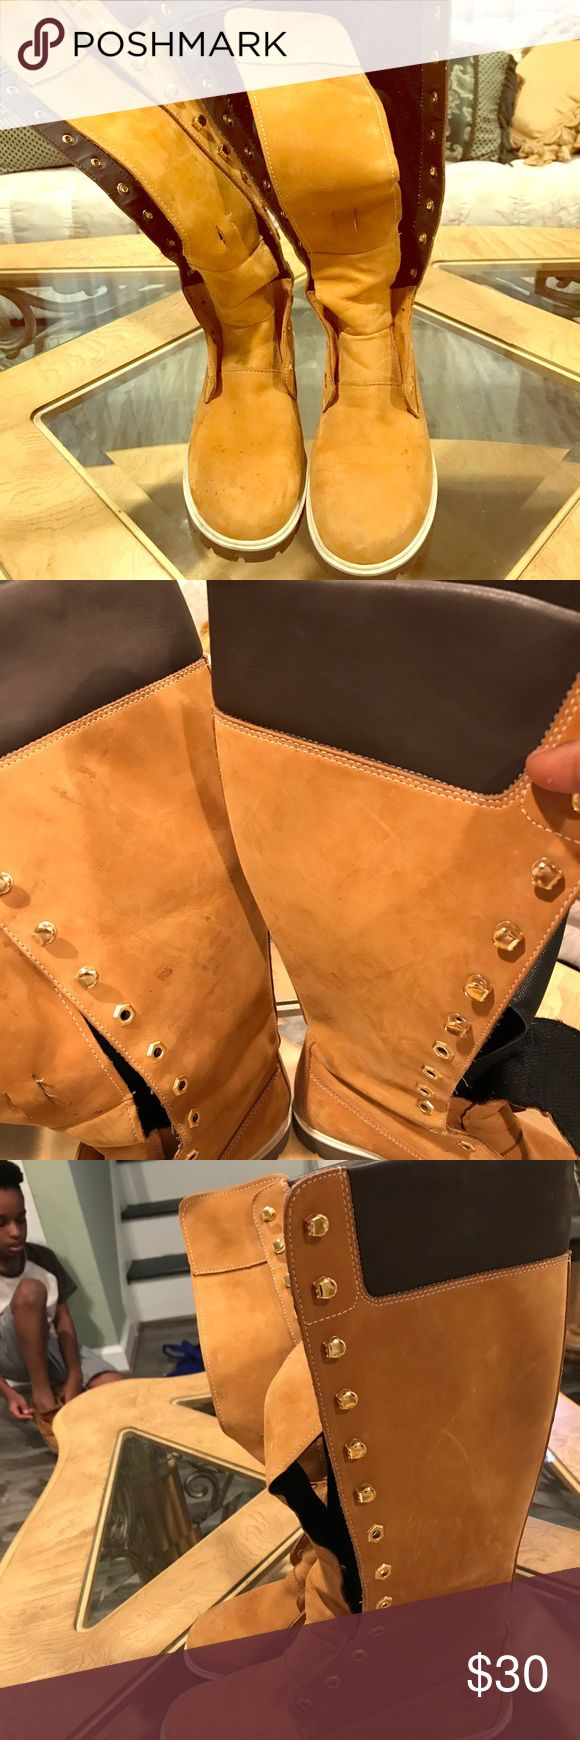 Selling this Timberland boots on Poshmark! My username is: leah2141. #shopmycloset #poshmark #fashion #shopping #style #forsale #Timberland #Shoes